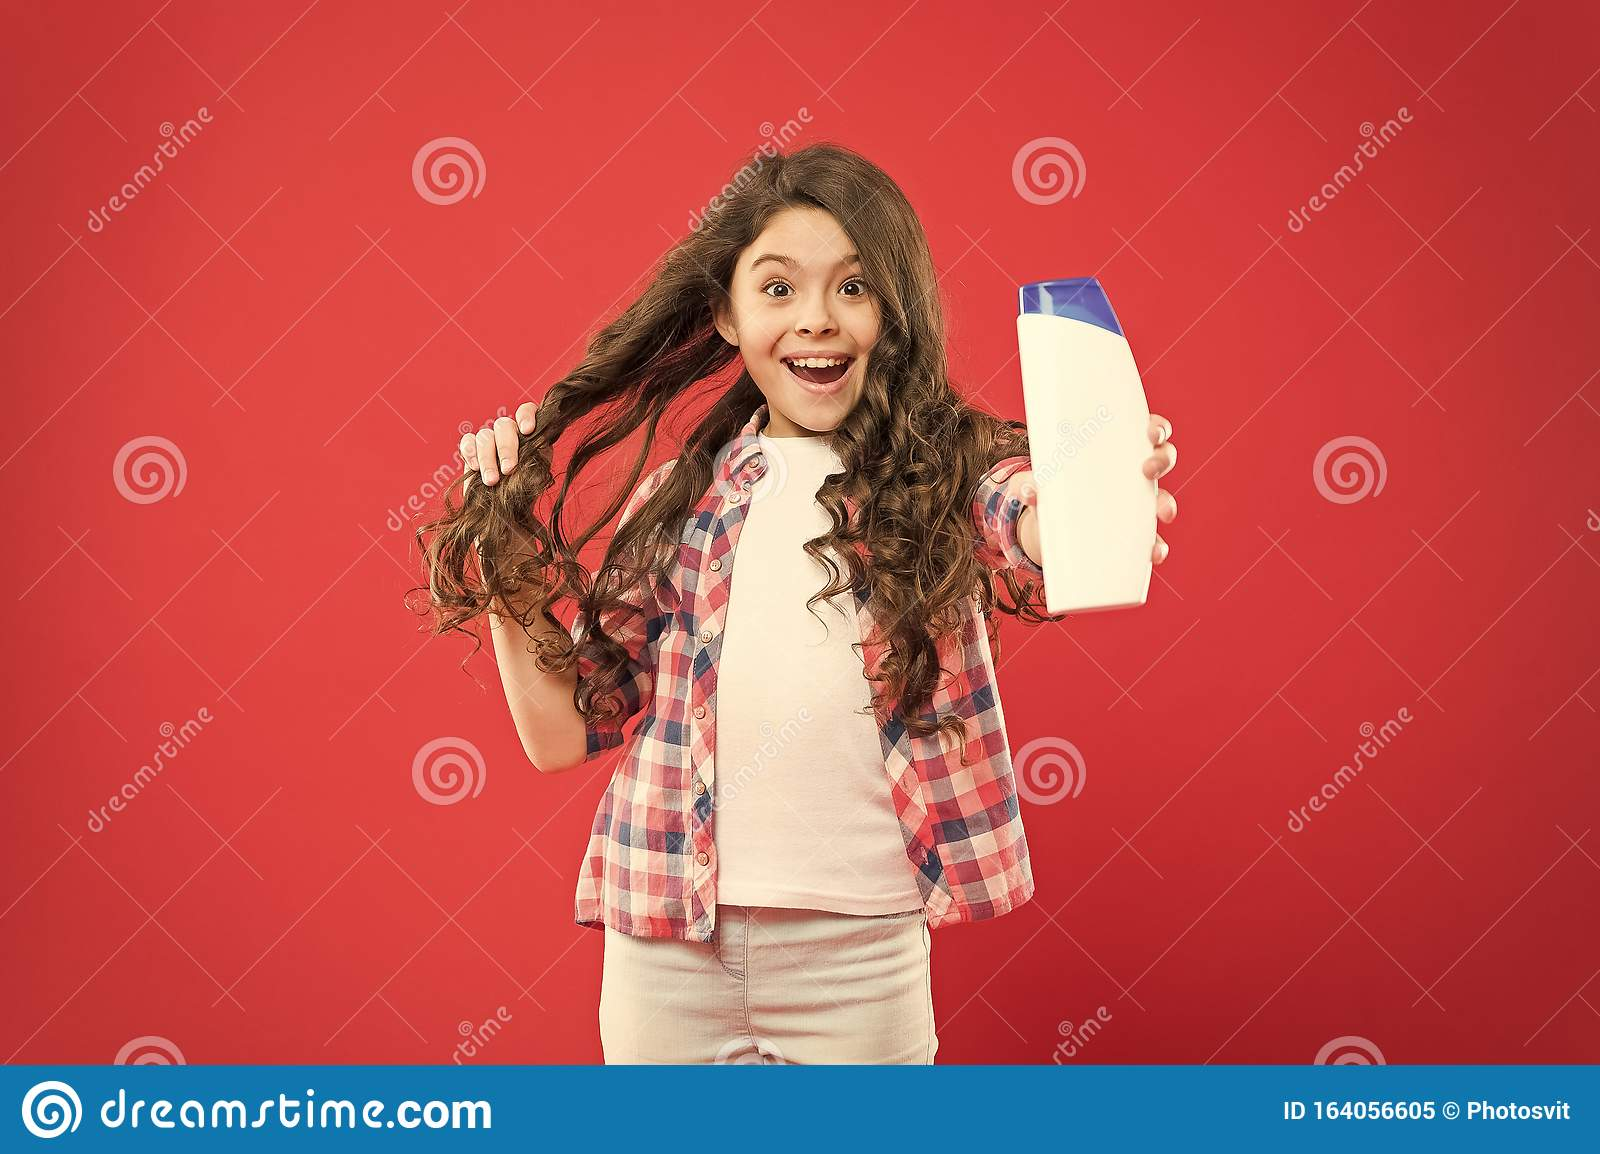 Girl Active Kid With Long Hair Dry Shampoo Easy Tips Making Hairstyle For Kids Strong And Healthy Hair Concept Long Stock Image Image Of Cute Fresh 164056605